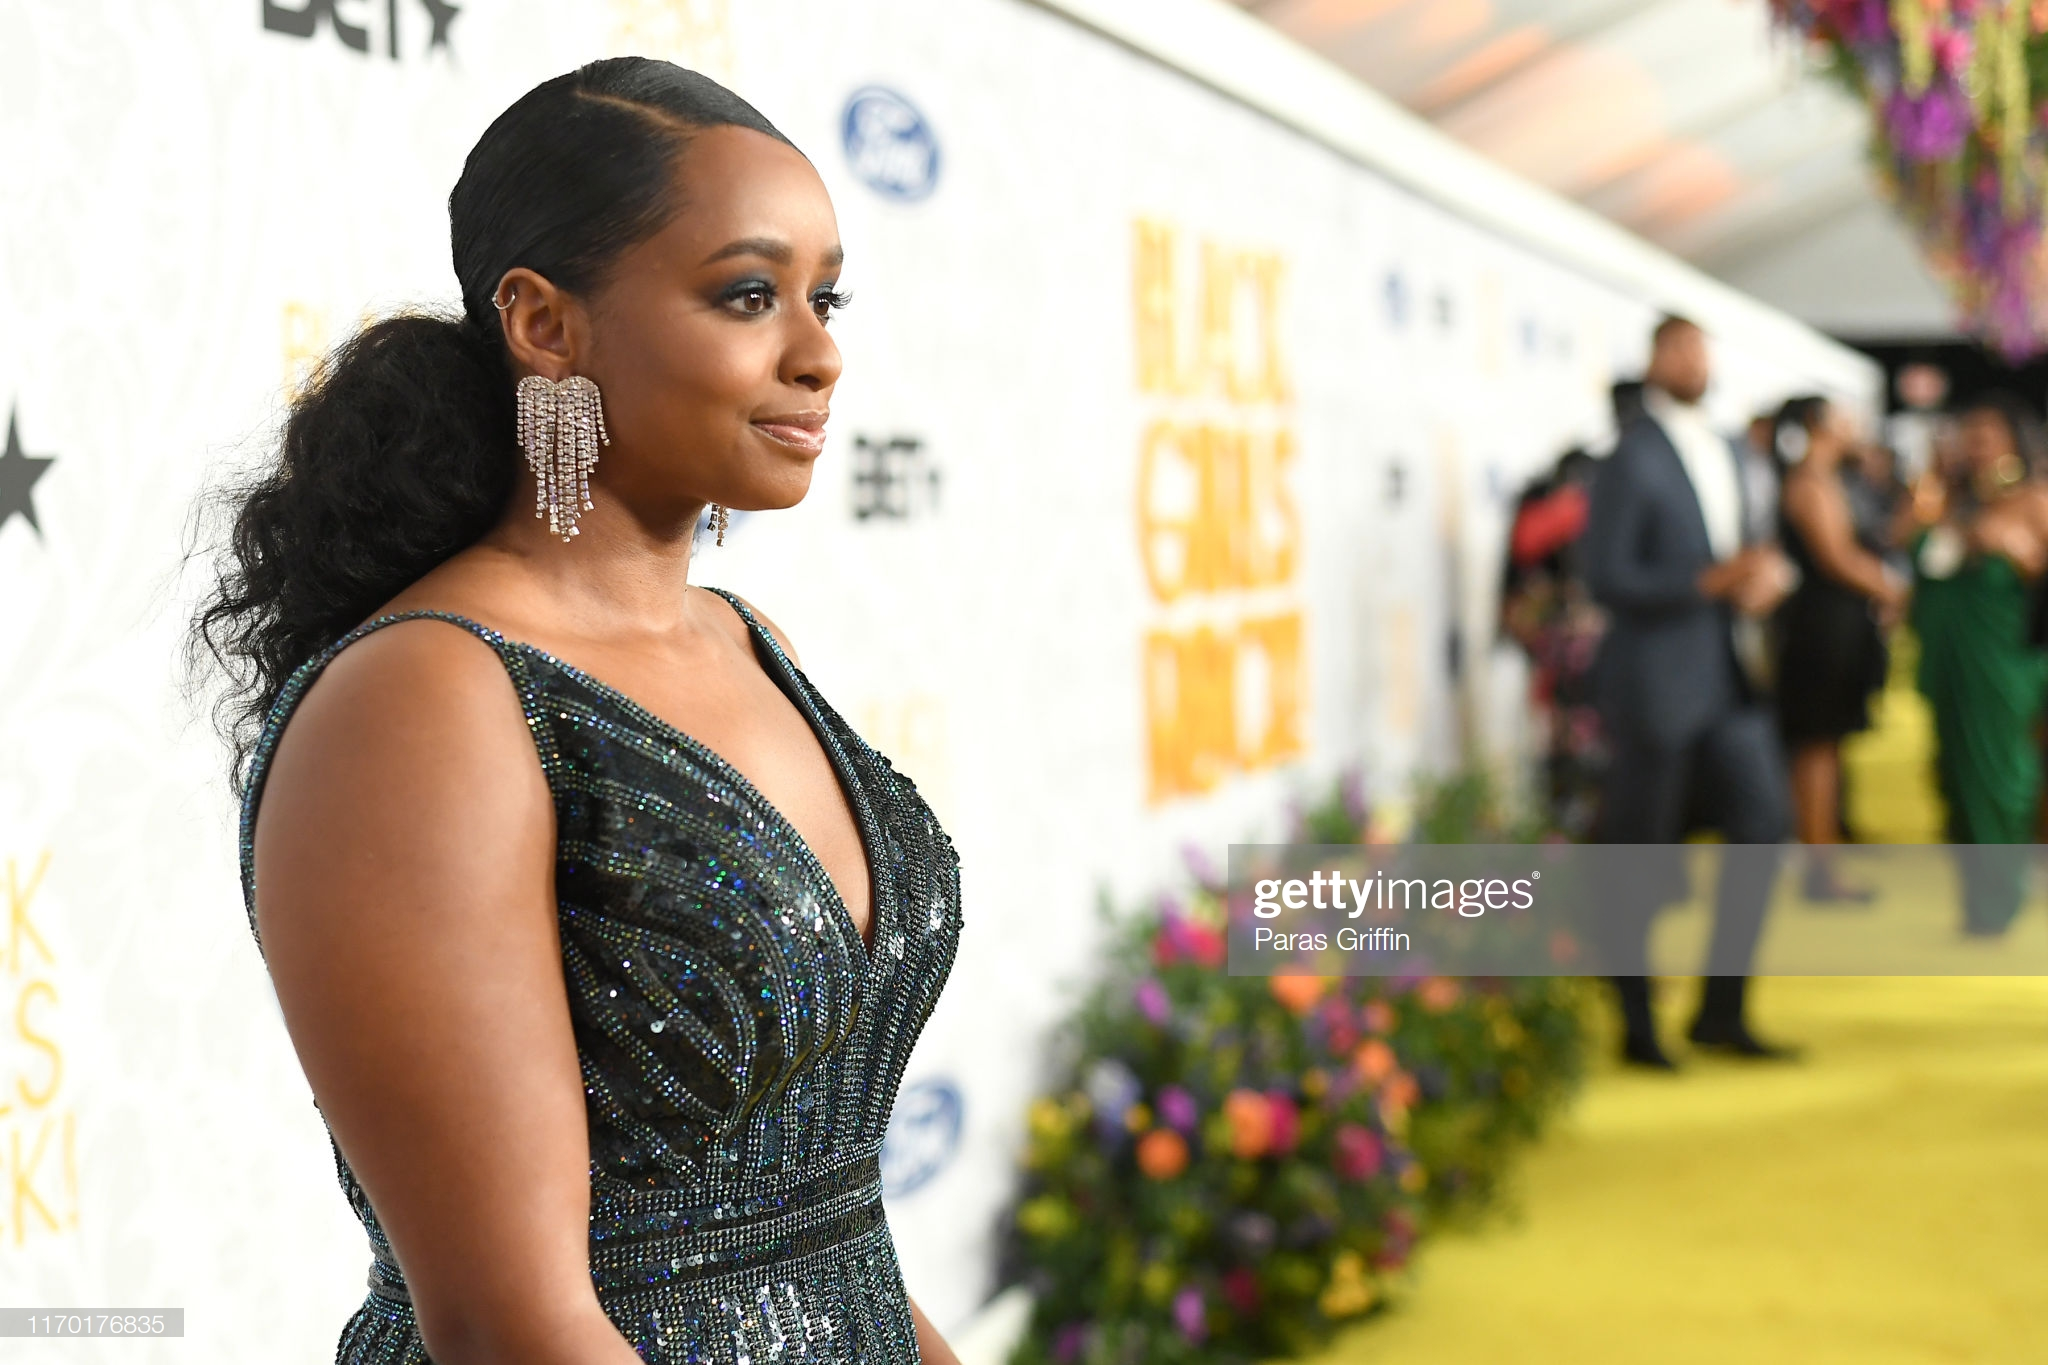 NEWARK, NEW JERSEY - AUGUST 25:  Tiffany Davis attends Black Girls Rock 2019 Hosted By Niecy Nash at NJPAC on August 25, 2019 in Newark, New Jersey.  (Photo by Paras Griffin/Getty Images for BET)